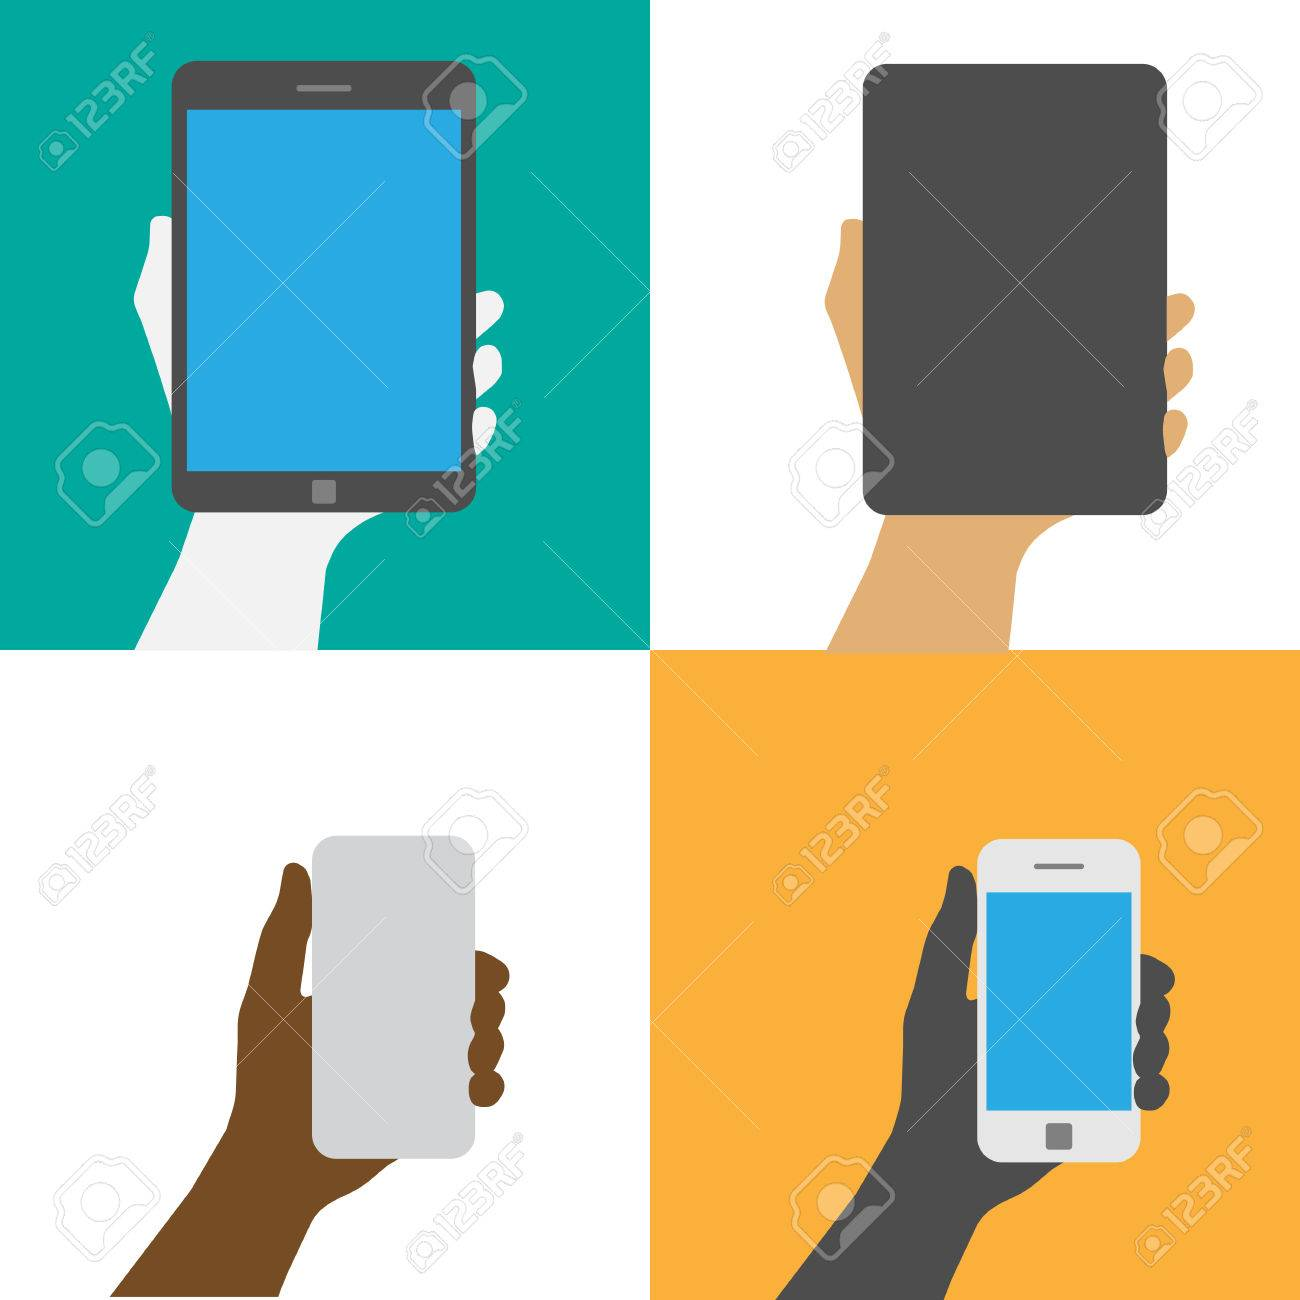 Smartphone and Tablet .Illustration EPS10 Stock Vector - 23124021